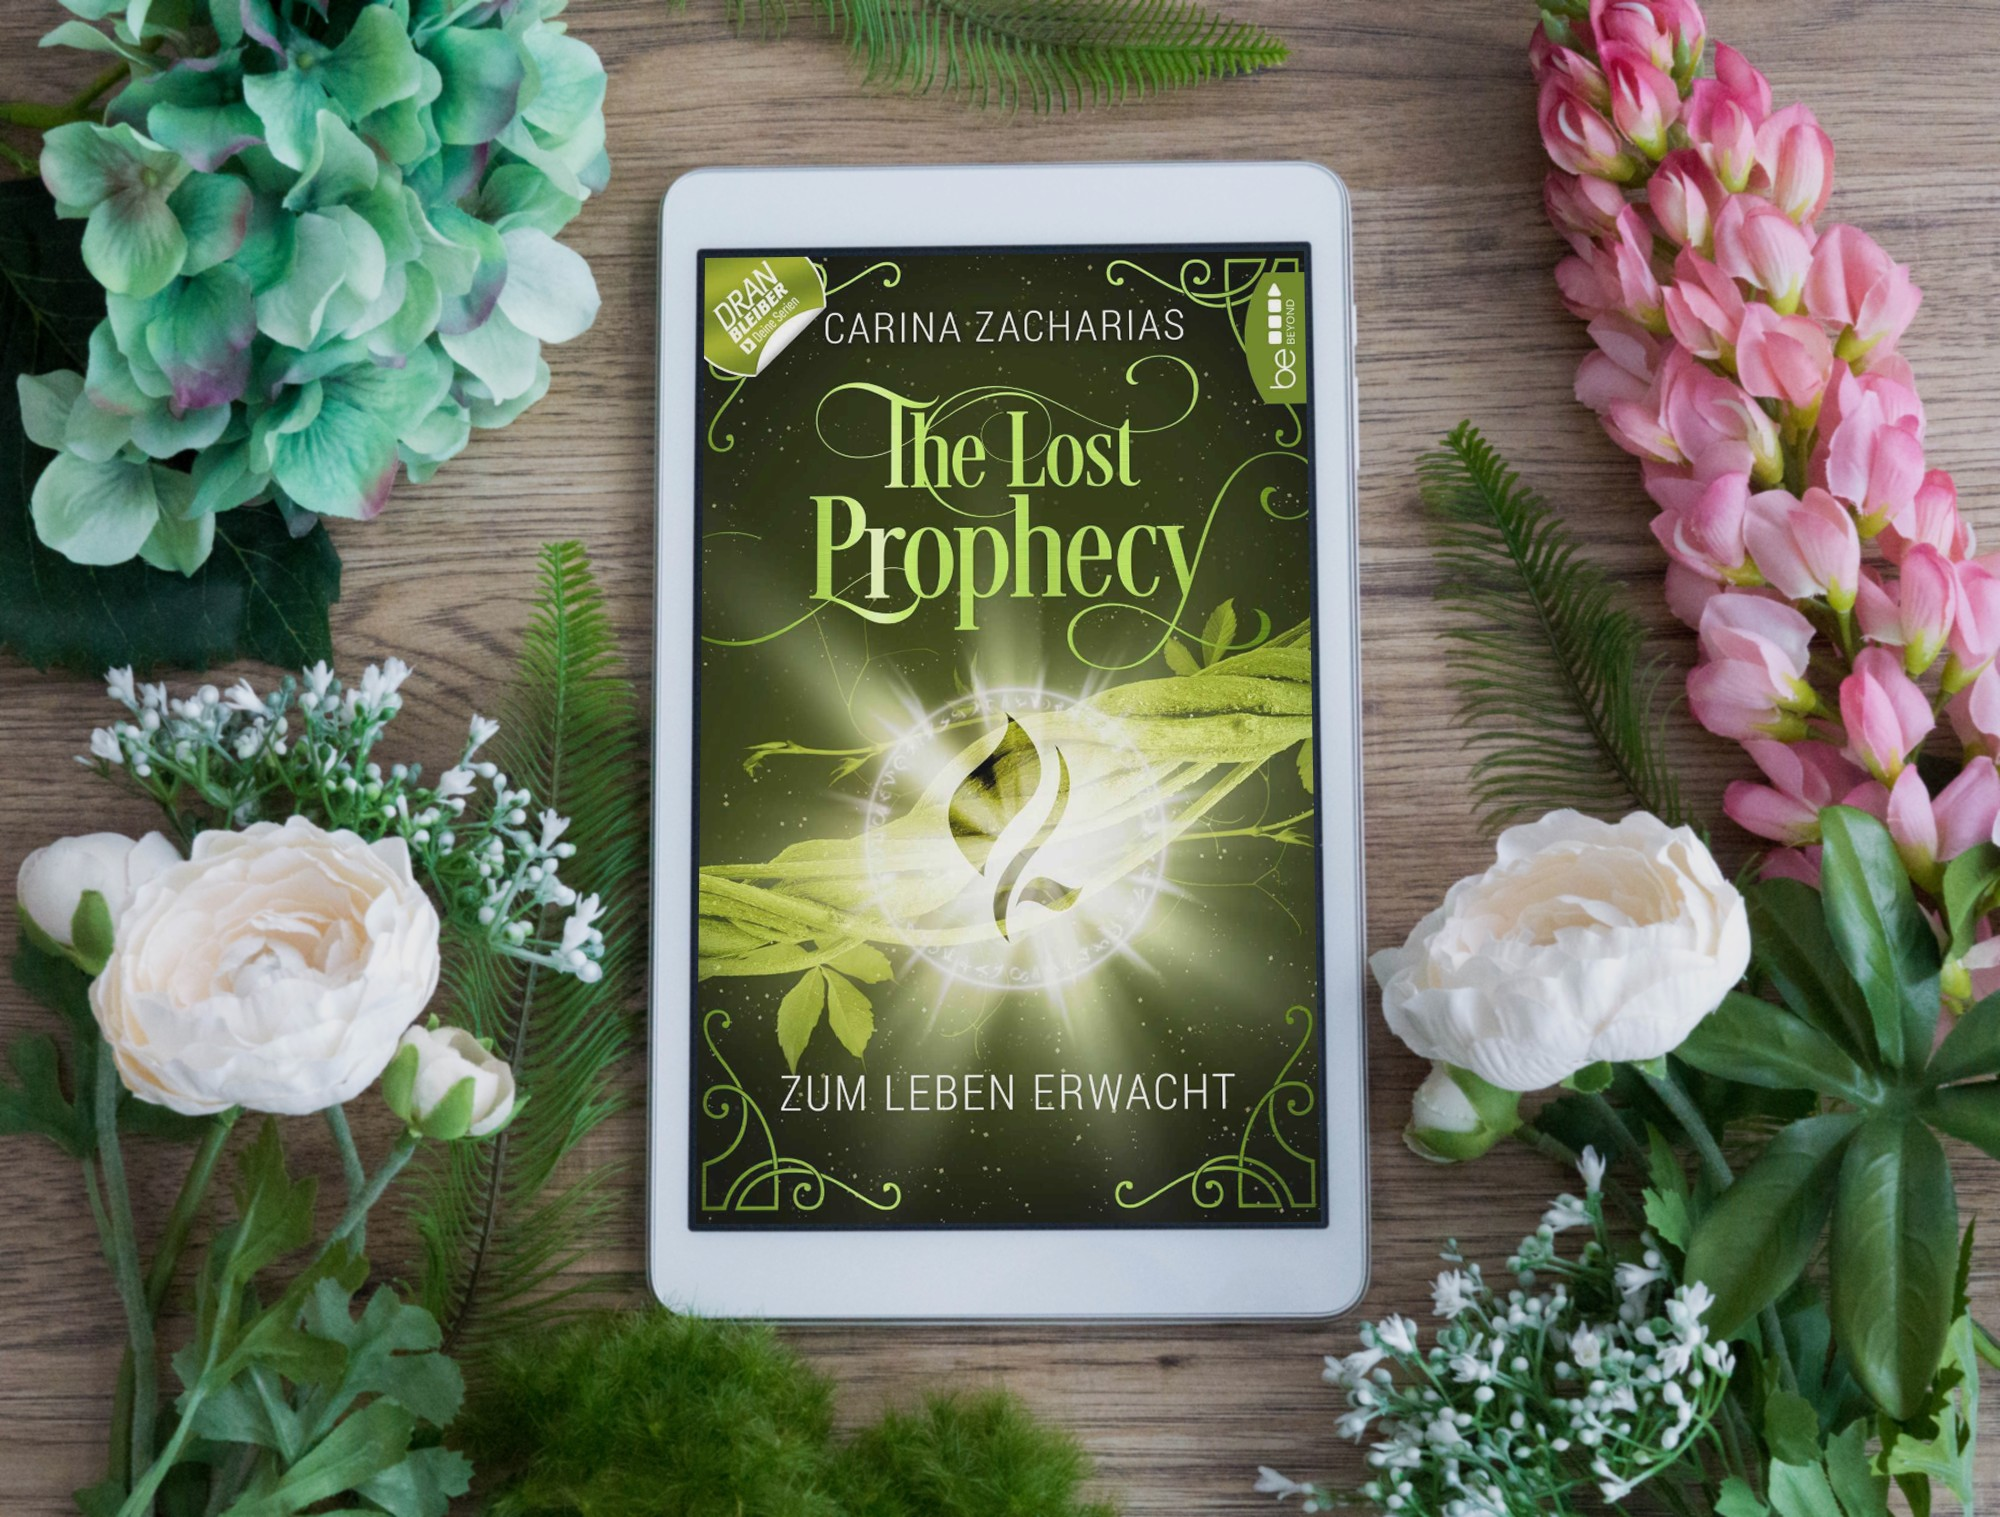 The Lost Prophecy: Zum Leben erwacht – Carina Zacharias graphic